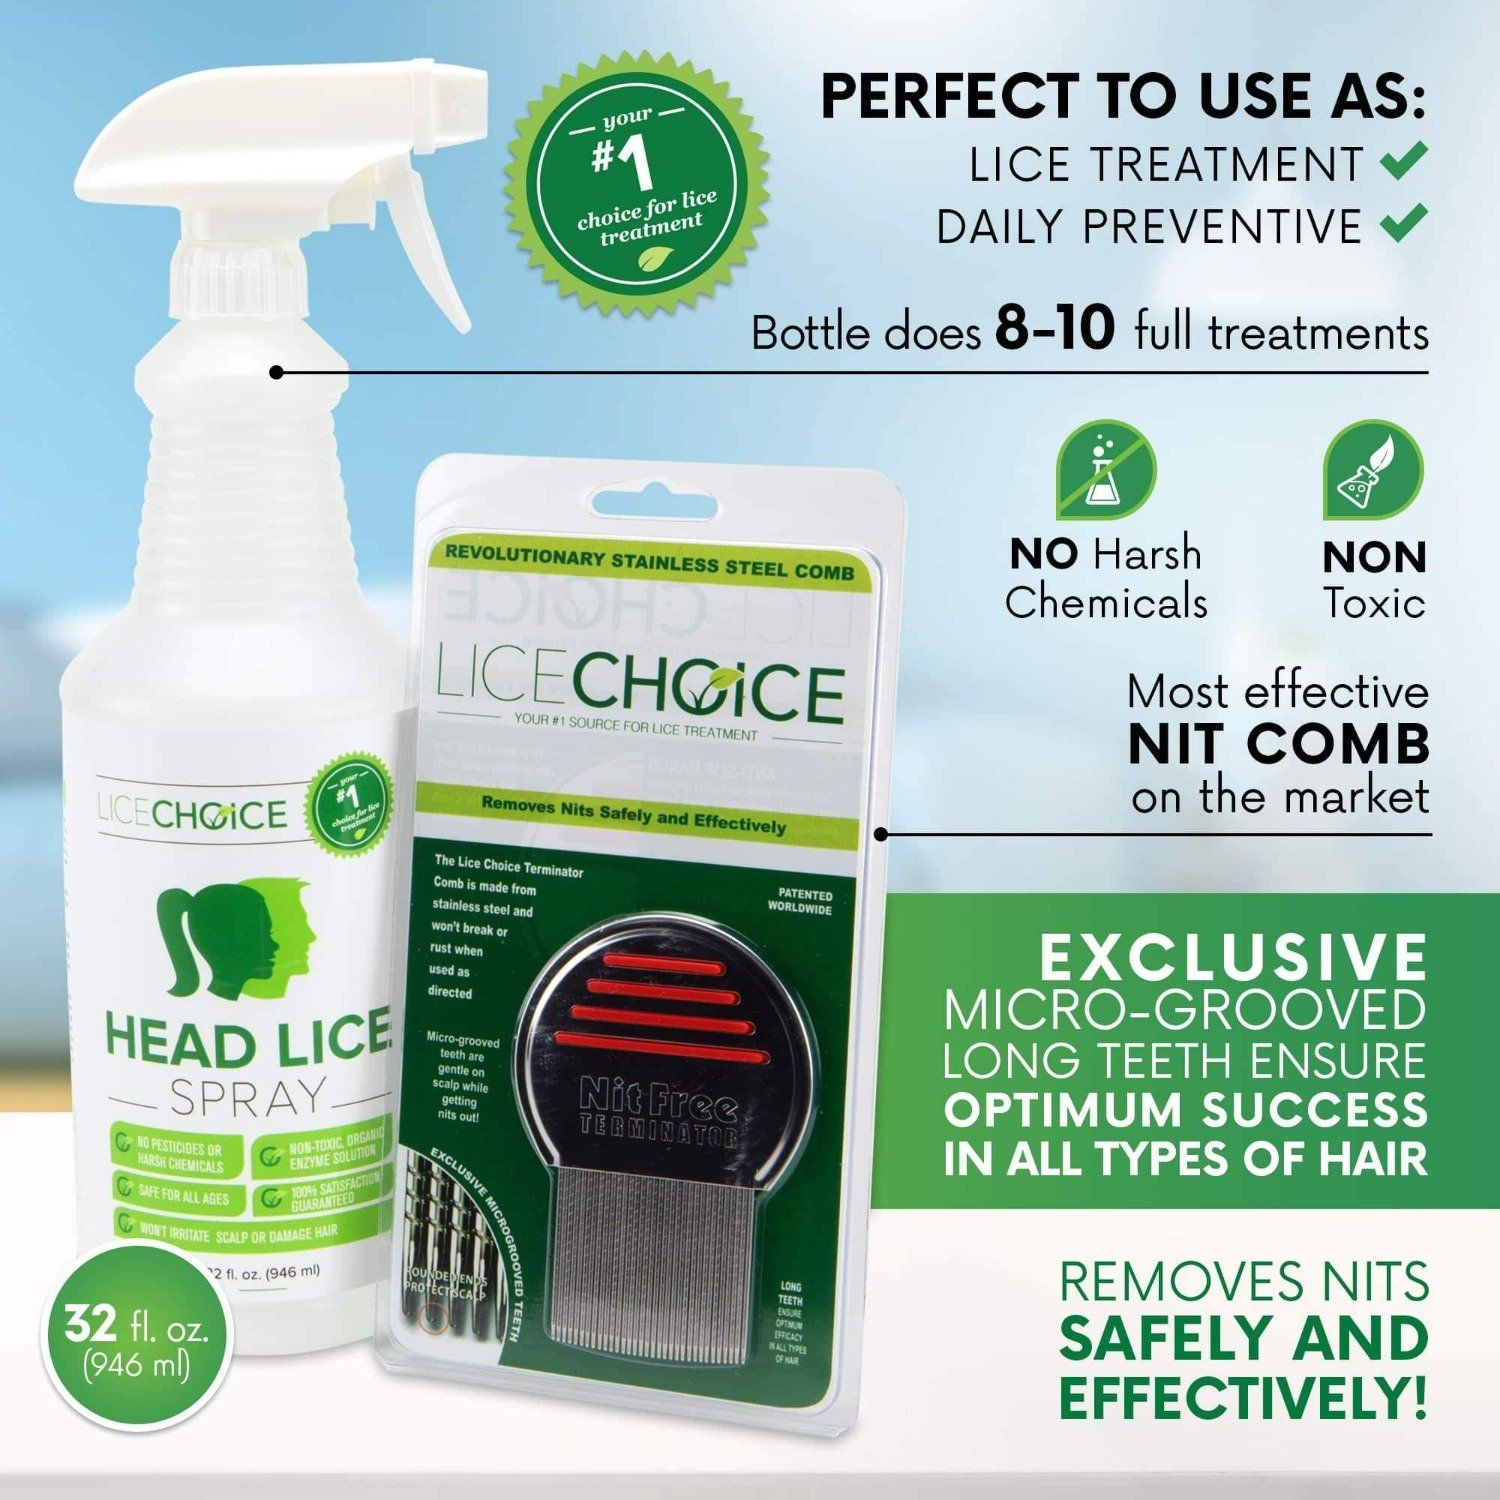 Lice Choice Head Lice Treatment Kit with Head Lice Treatment Spray and Terminator Nit Comb